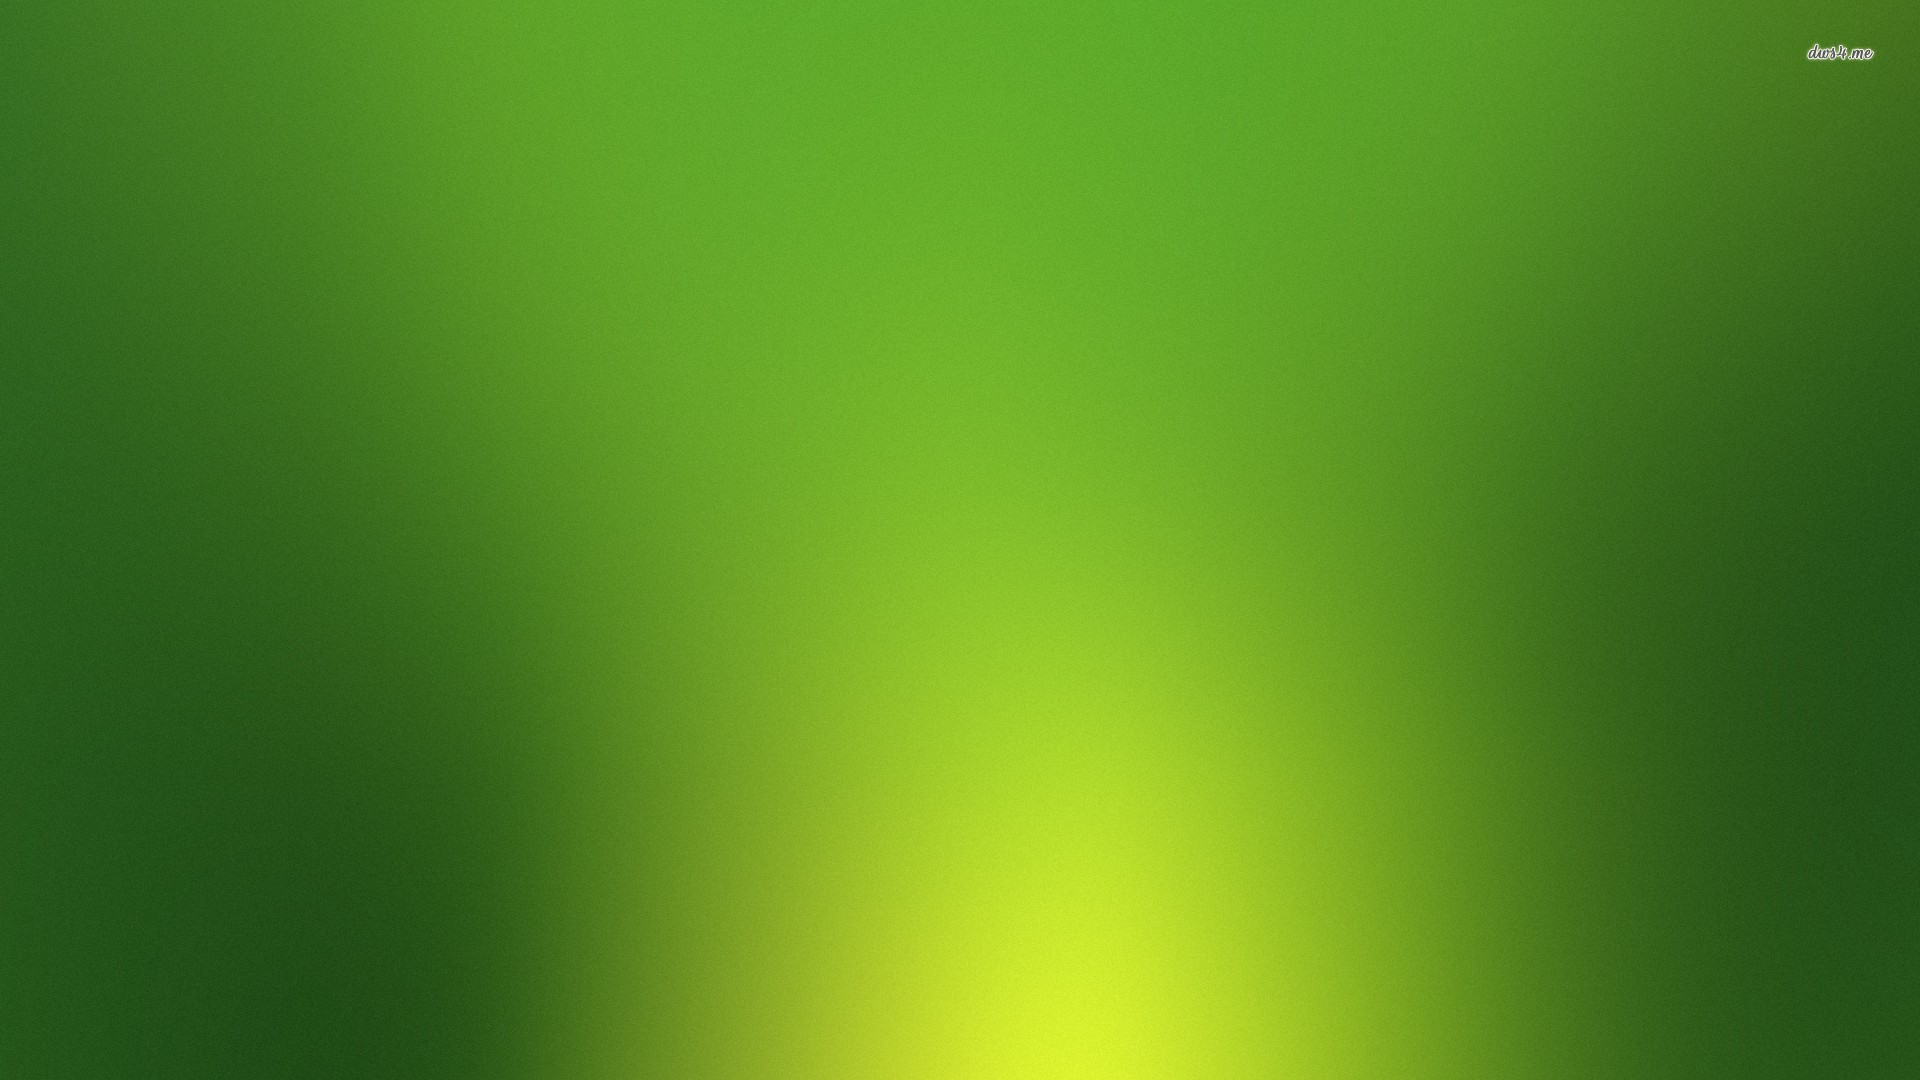 White Gradient Background ·① Download Free Beautiful